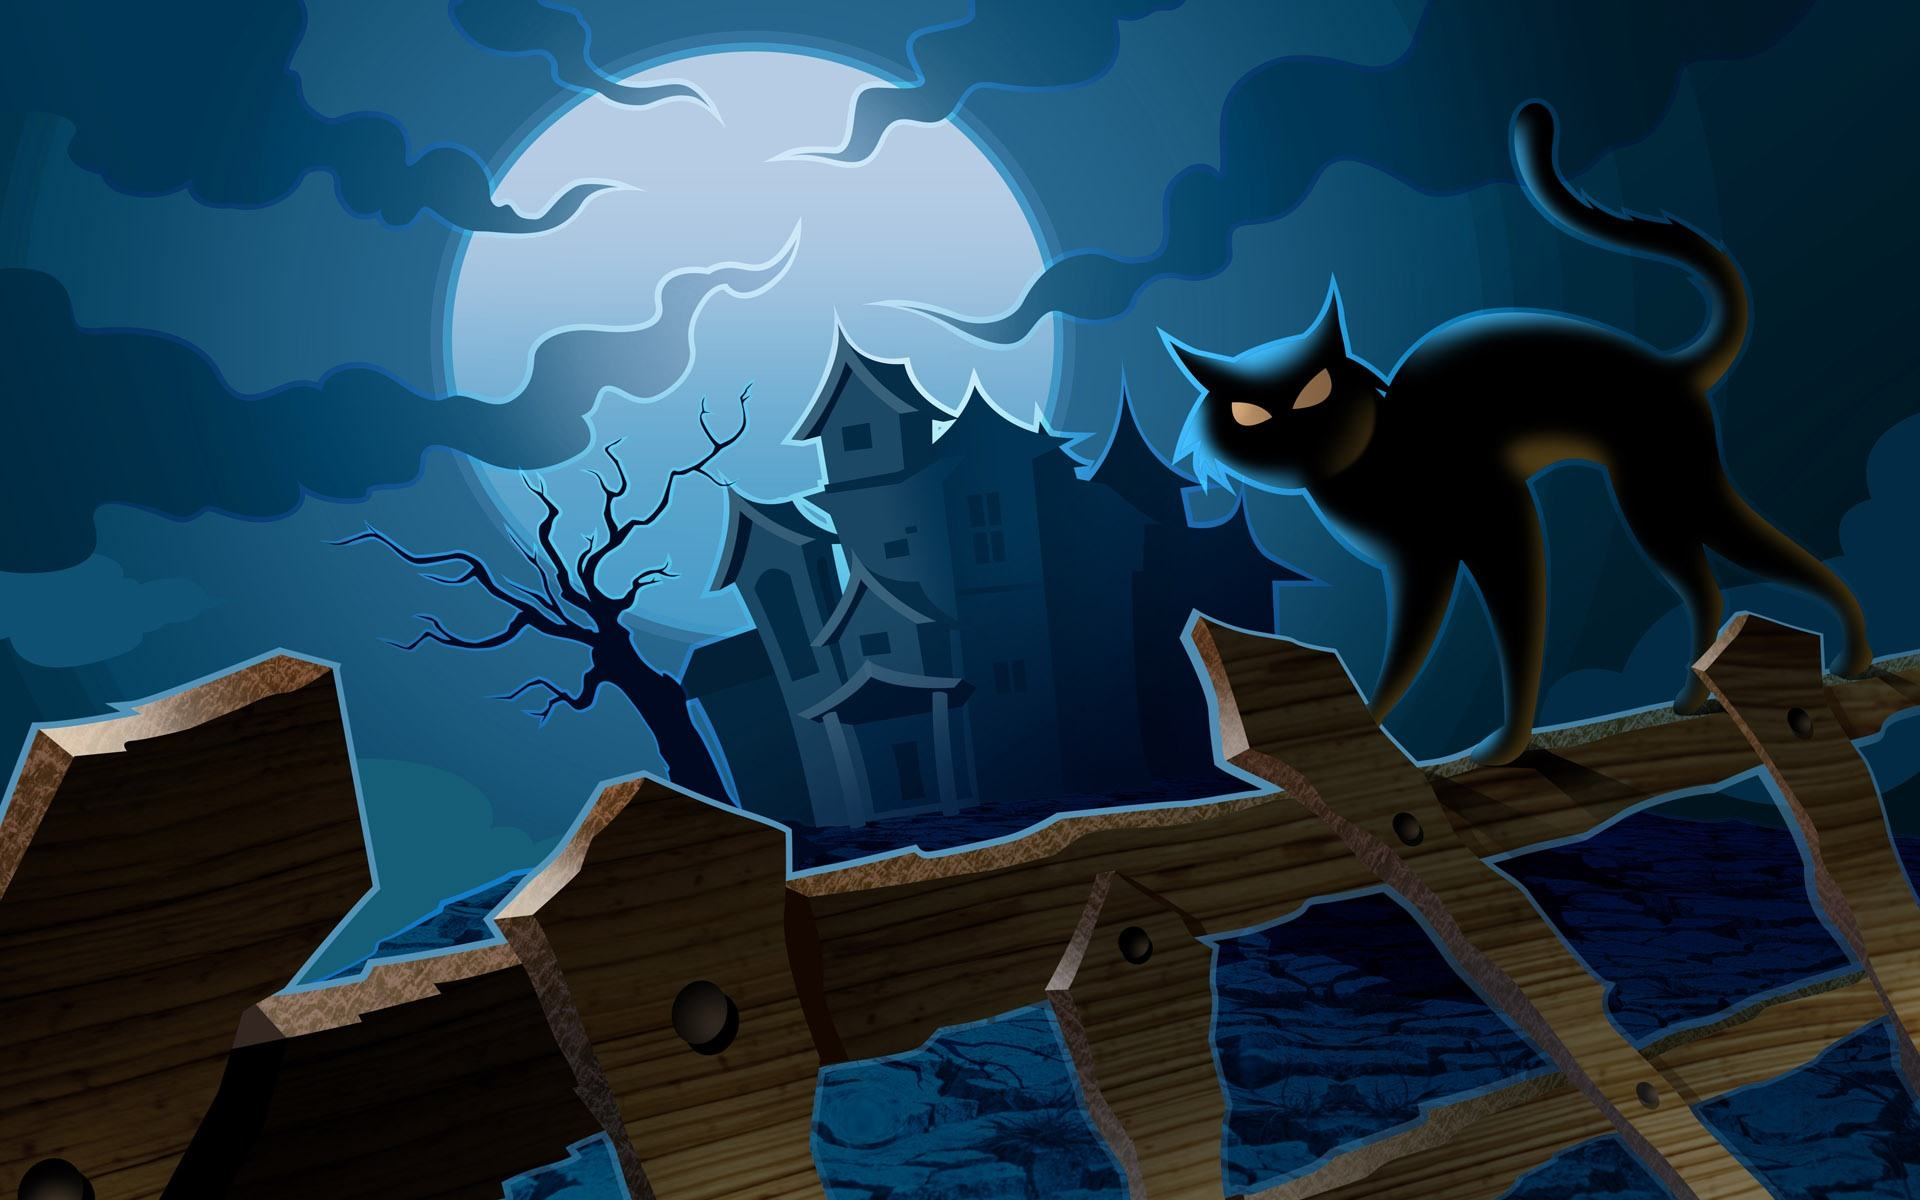 Haunted House Cat Wallpaper Holidays HD Wallpapers Backgrounds 1920x1200